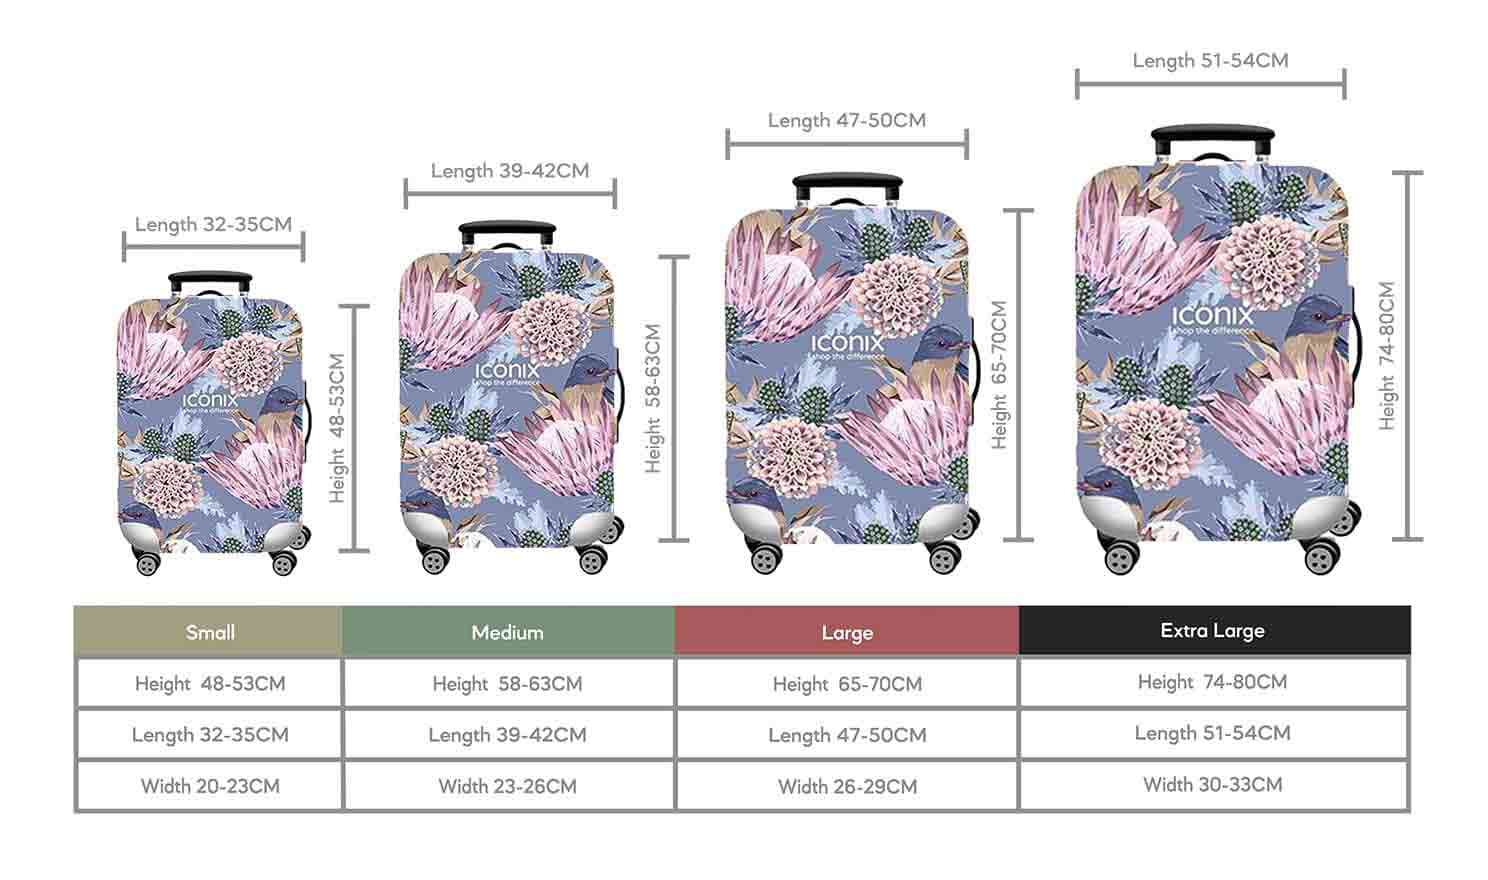 Size Chart for Iconix Lilac Love Printed Luggage Protector